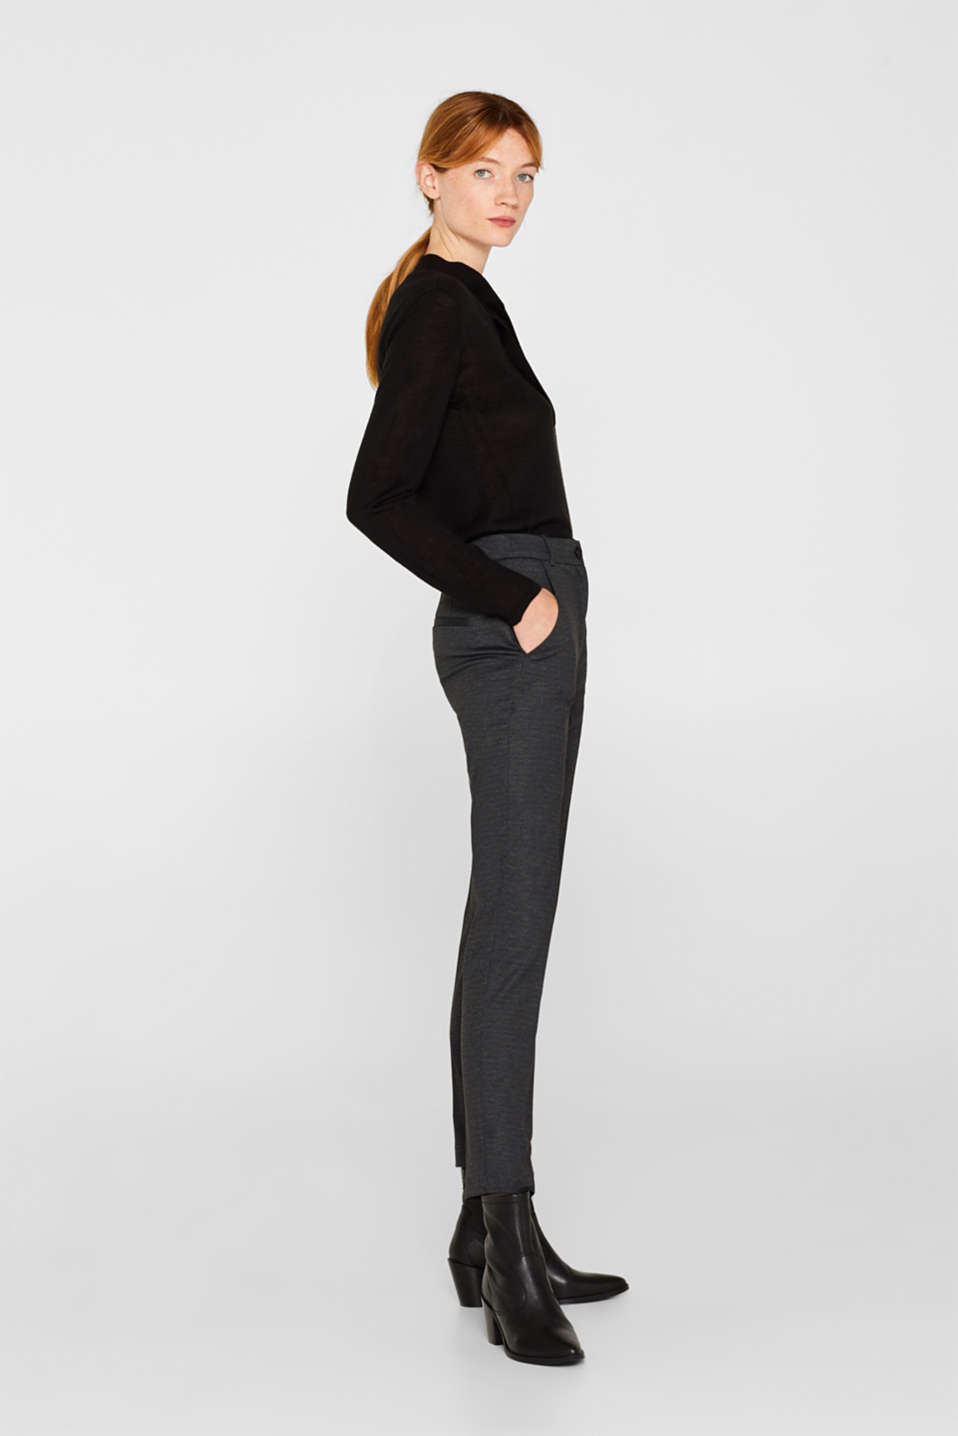 MINI CHECK Mix + Match stretch trousers, ANTHRACITE, detail image number 5